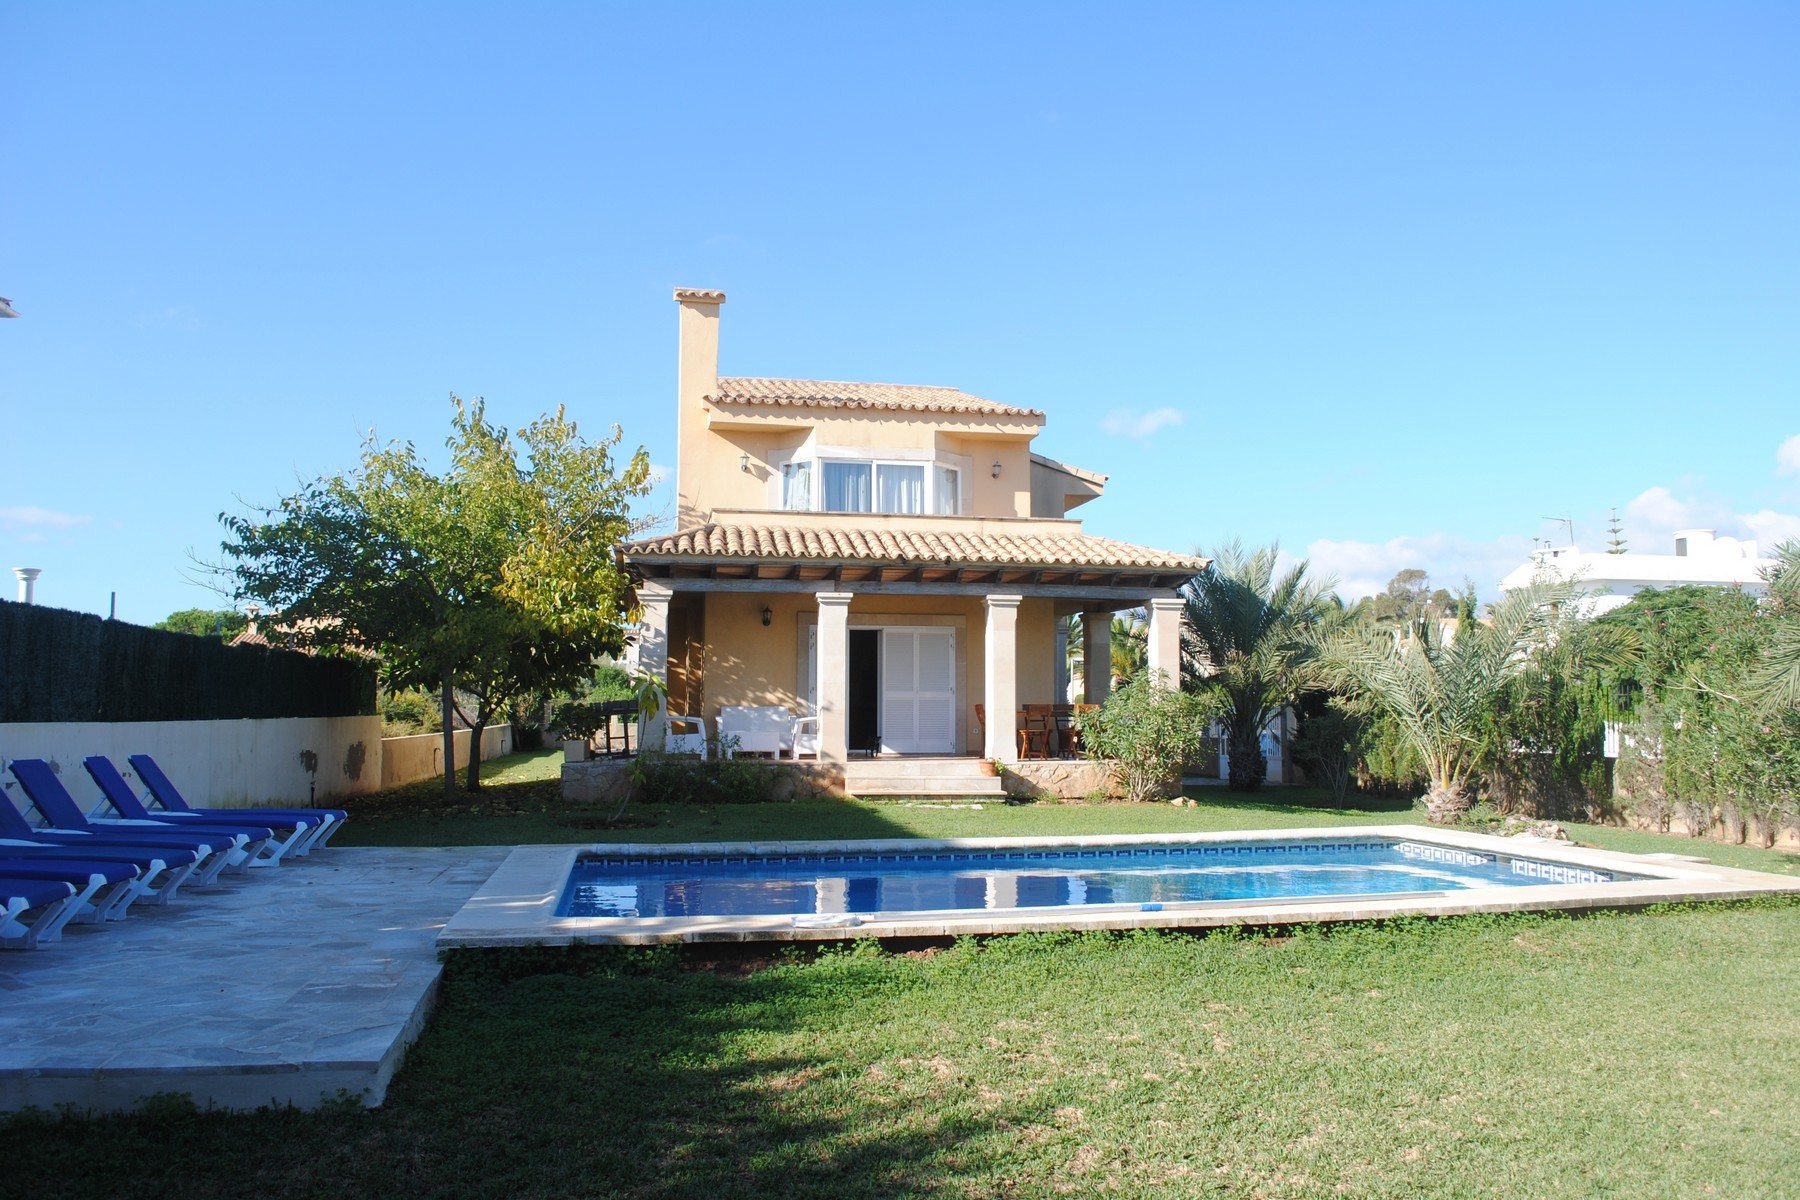 Single Family Home for Sale at Villa with pool a few meters from the beach Other Balearic Islands, Balearic Islands Spain